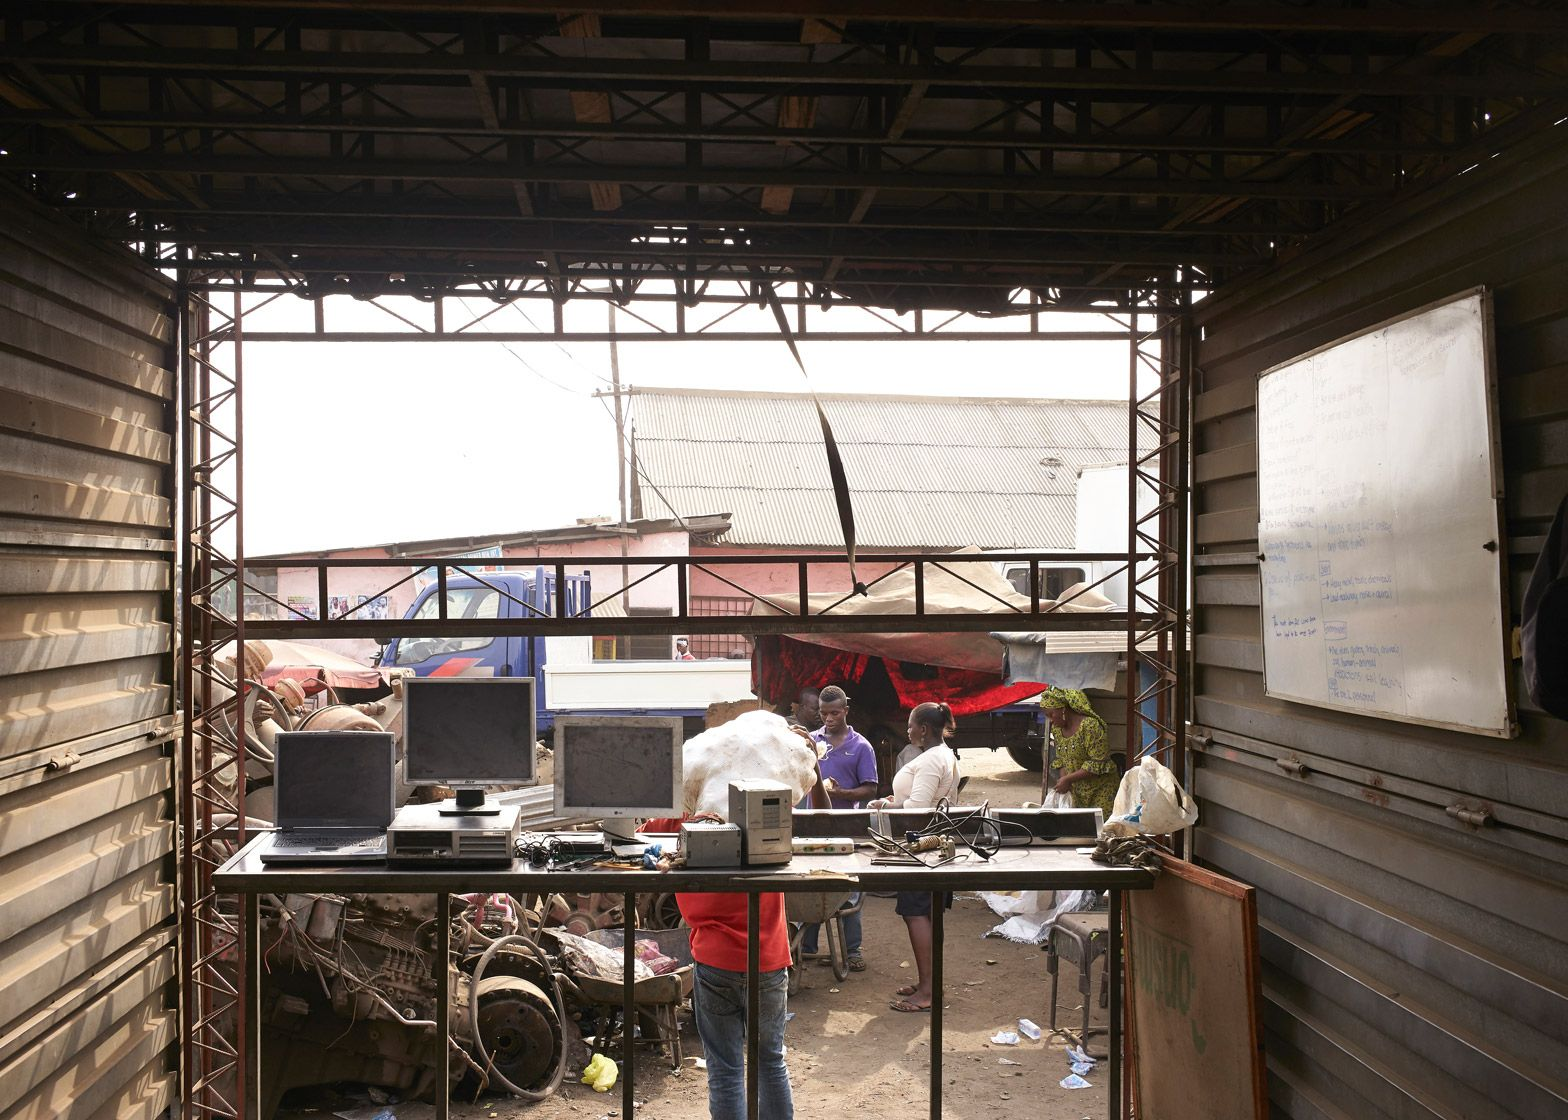 amp-spacecraft-makerspace-mobile-structures-agbogbloshie-ghana-worlds-largest-electrical-waste-dump-africa-potential-micro-industry-platforms-low-design-office_dezeen_1568_2.jpg